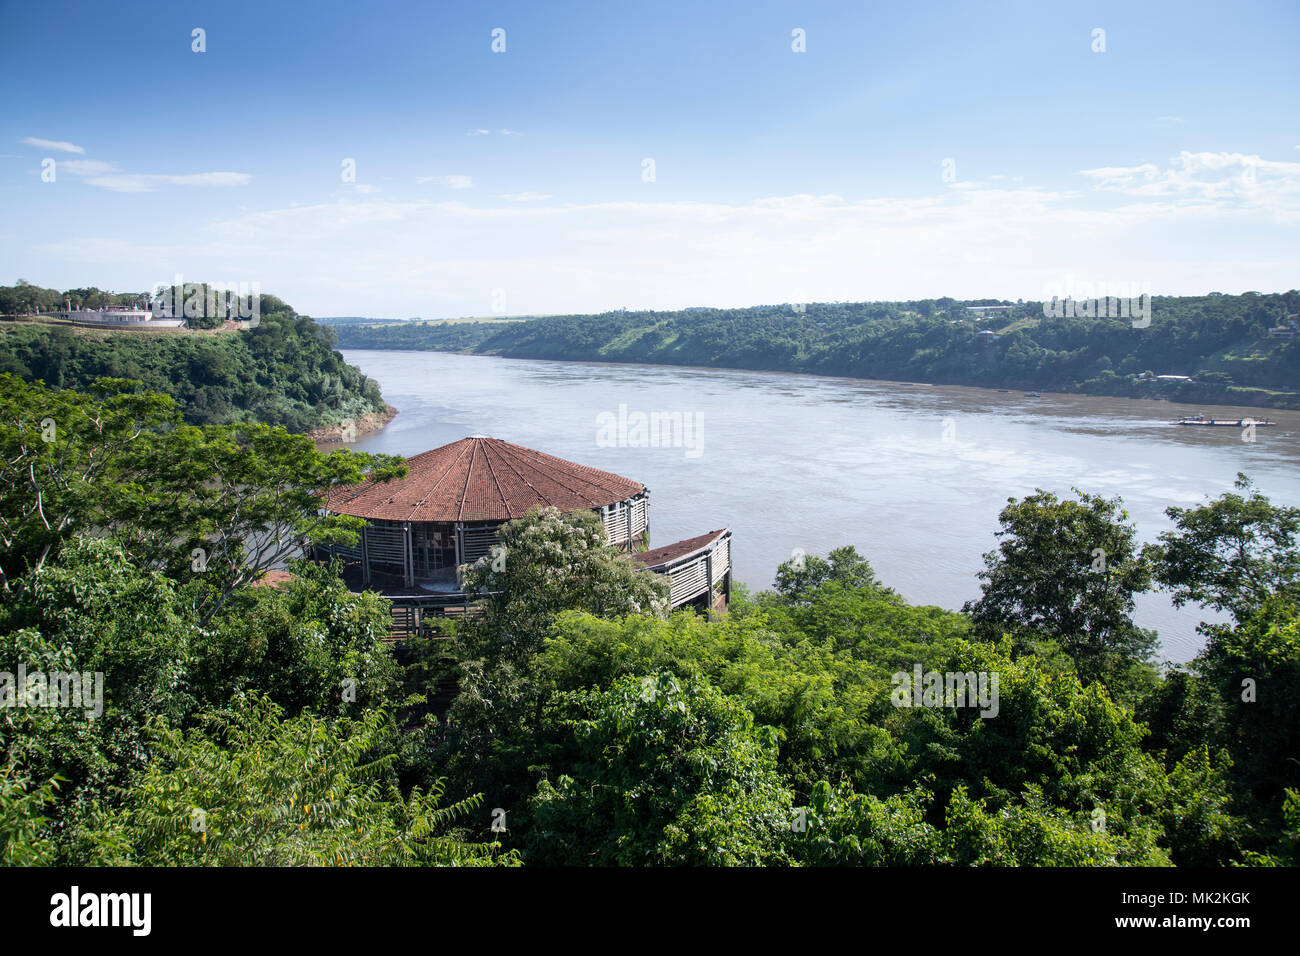 The Triple frontier tri-border area along the junction of Paraguay, Argentina, and Brazil, where the Iguazu and Parana rivers converge - Stock Image